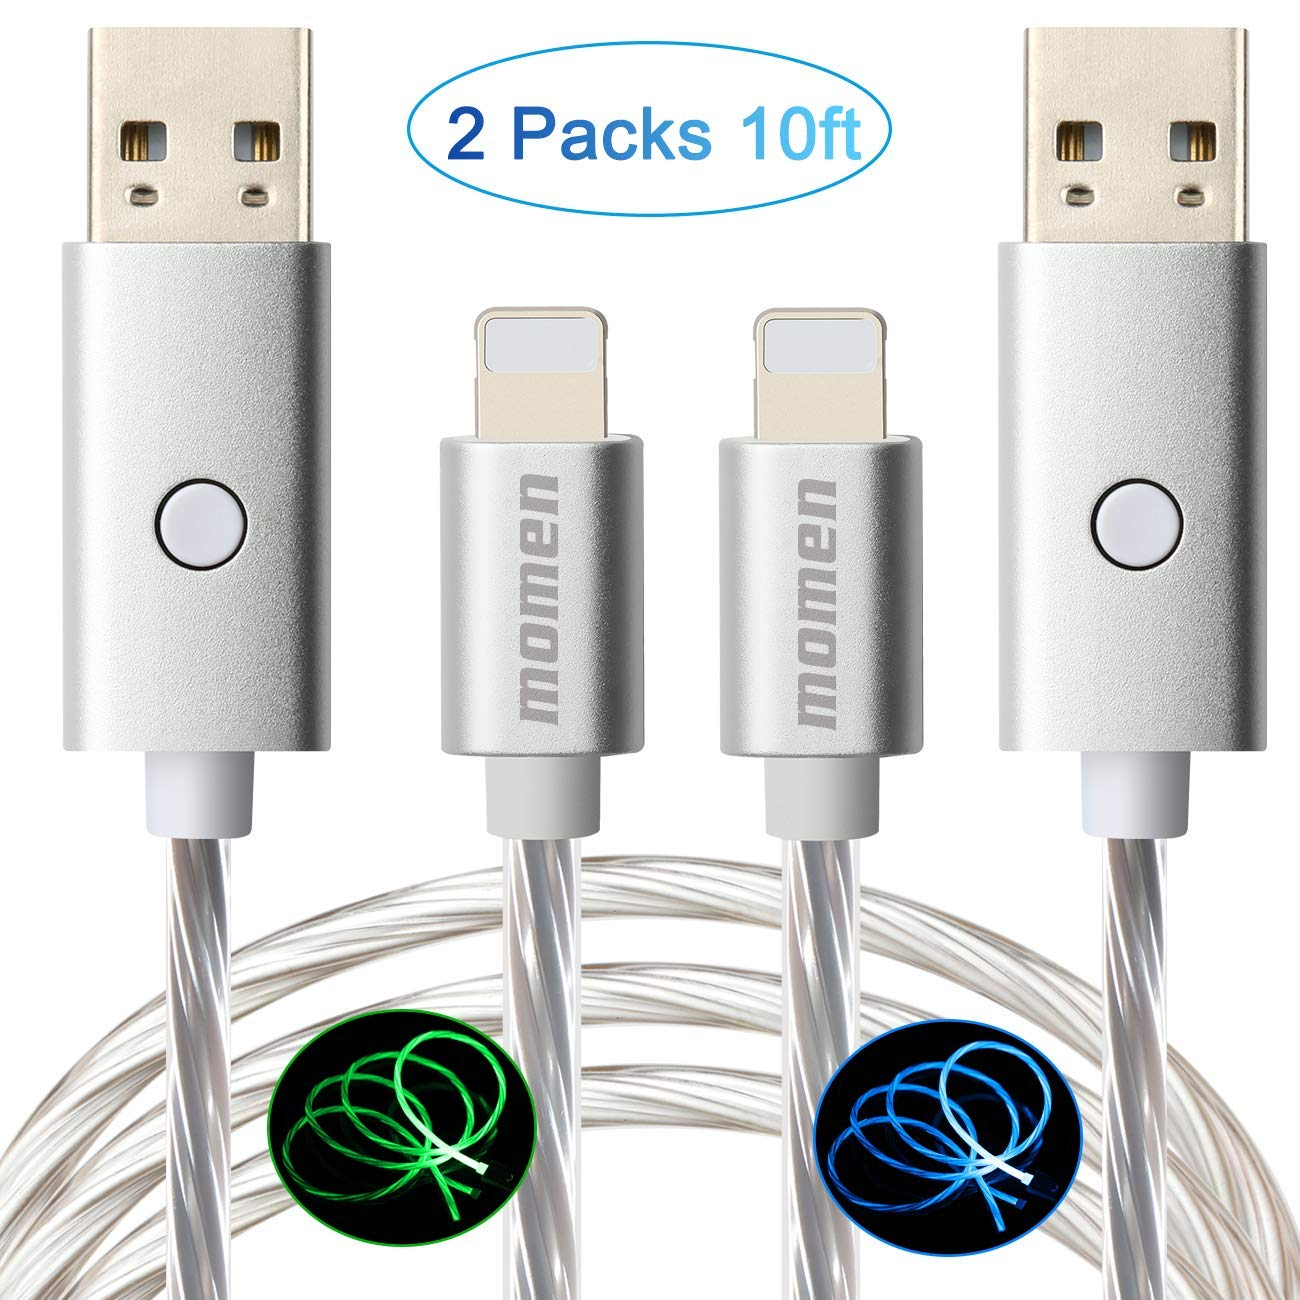 Lighted iPhone Charger Cable 10ft 2Pack Momen Fast Sync Charging Cable LED Flowing Light Charging Cord Compatible with iPhone 11/11 Pro/11 Pro Max/X/Xr/8/8 Plus/7/7 Plus/6s/6 and More(Blue & Green)